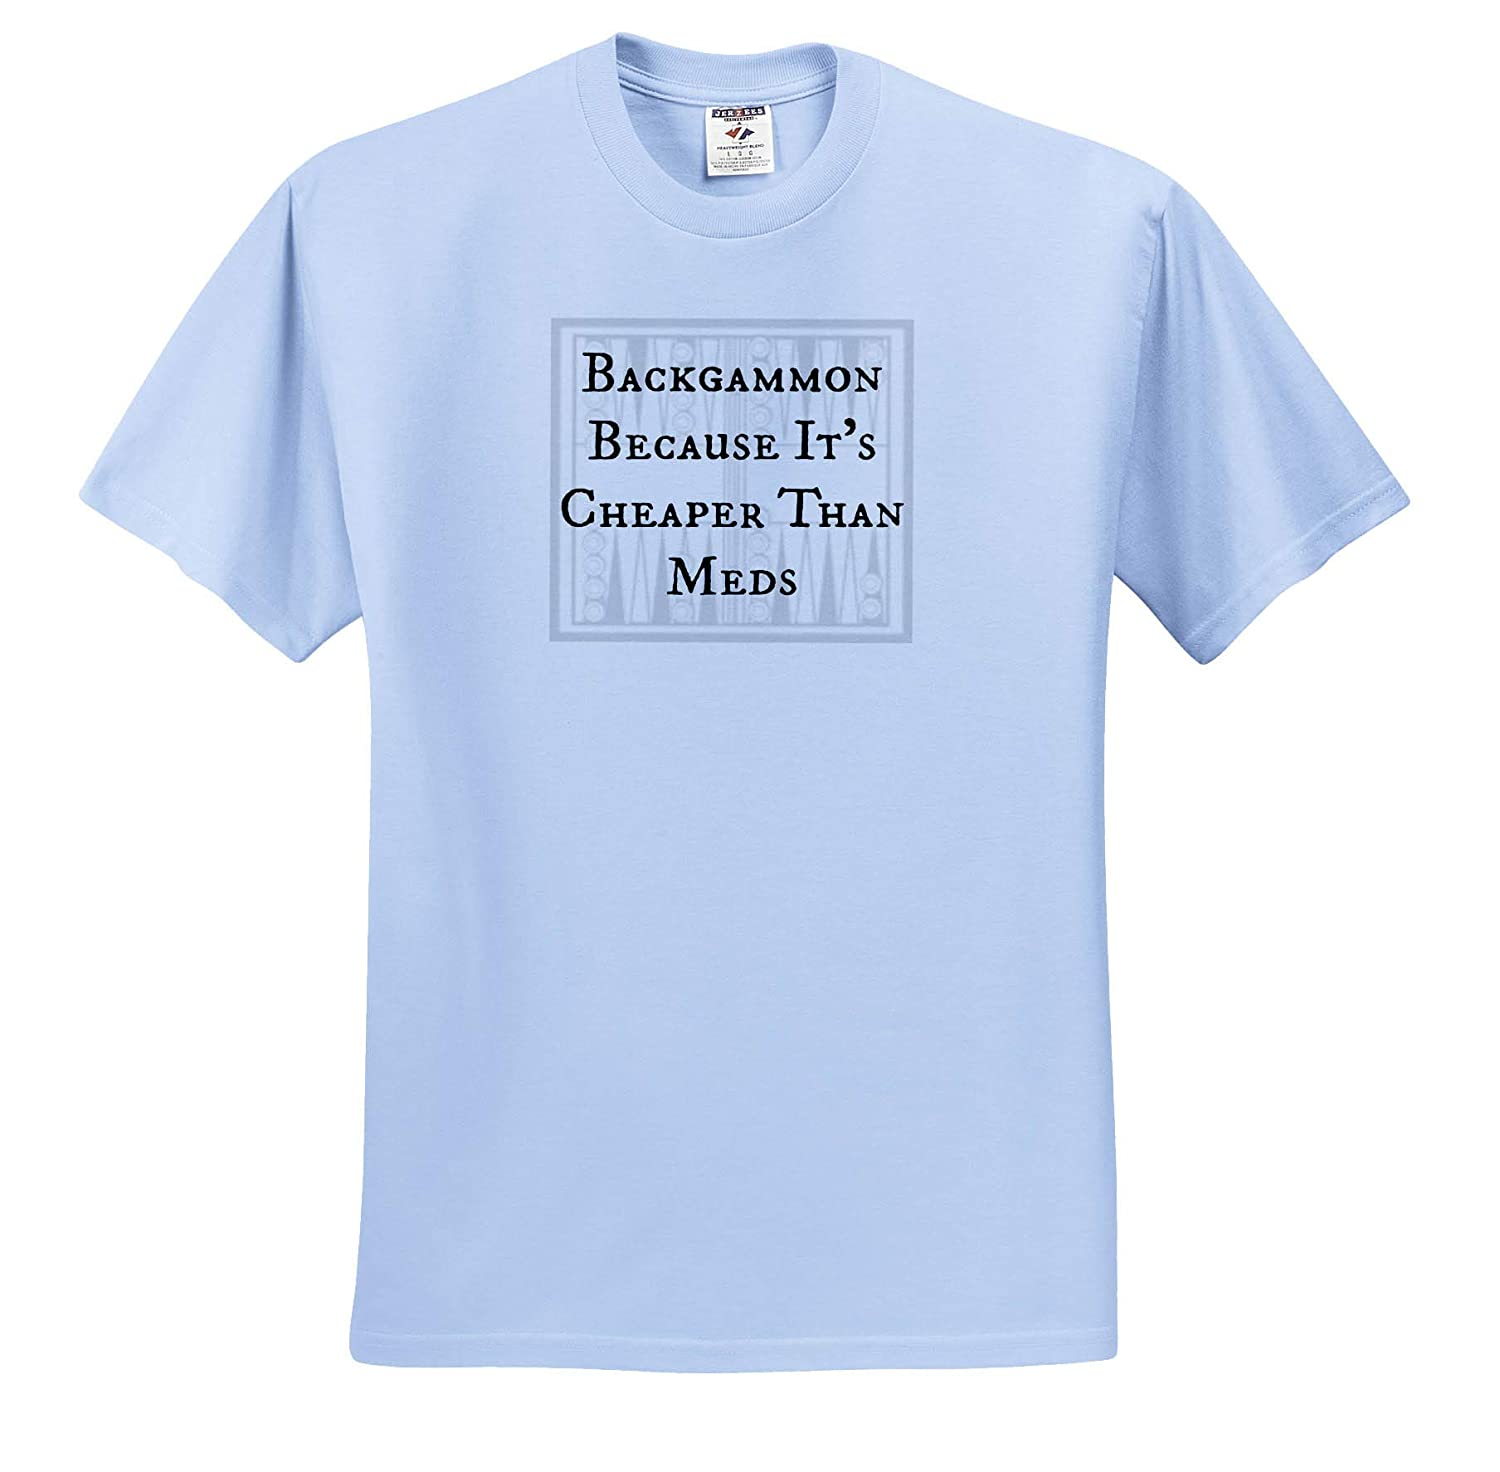 Adult T-Shirt XL ts/_311865 Image of BackgammonBecause Its Cheaper Than Meds 3dRose Carrie Merchant Quote